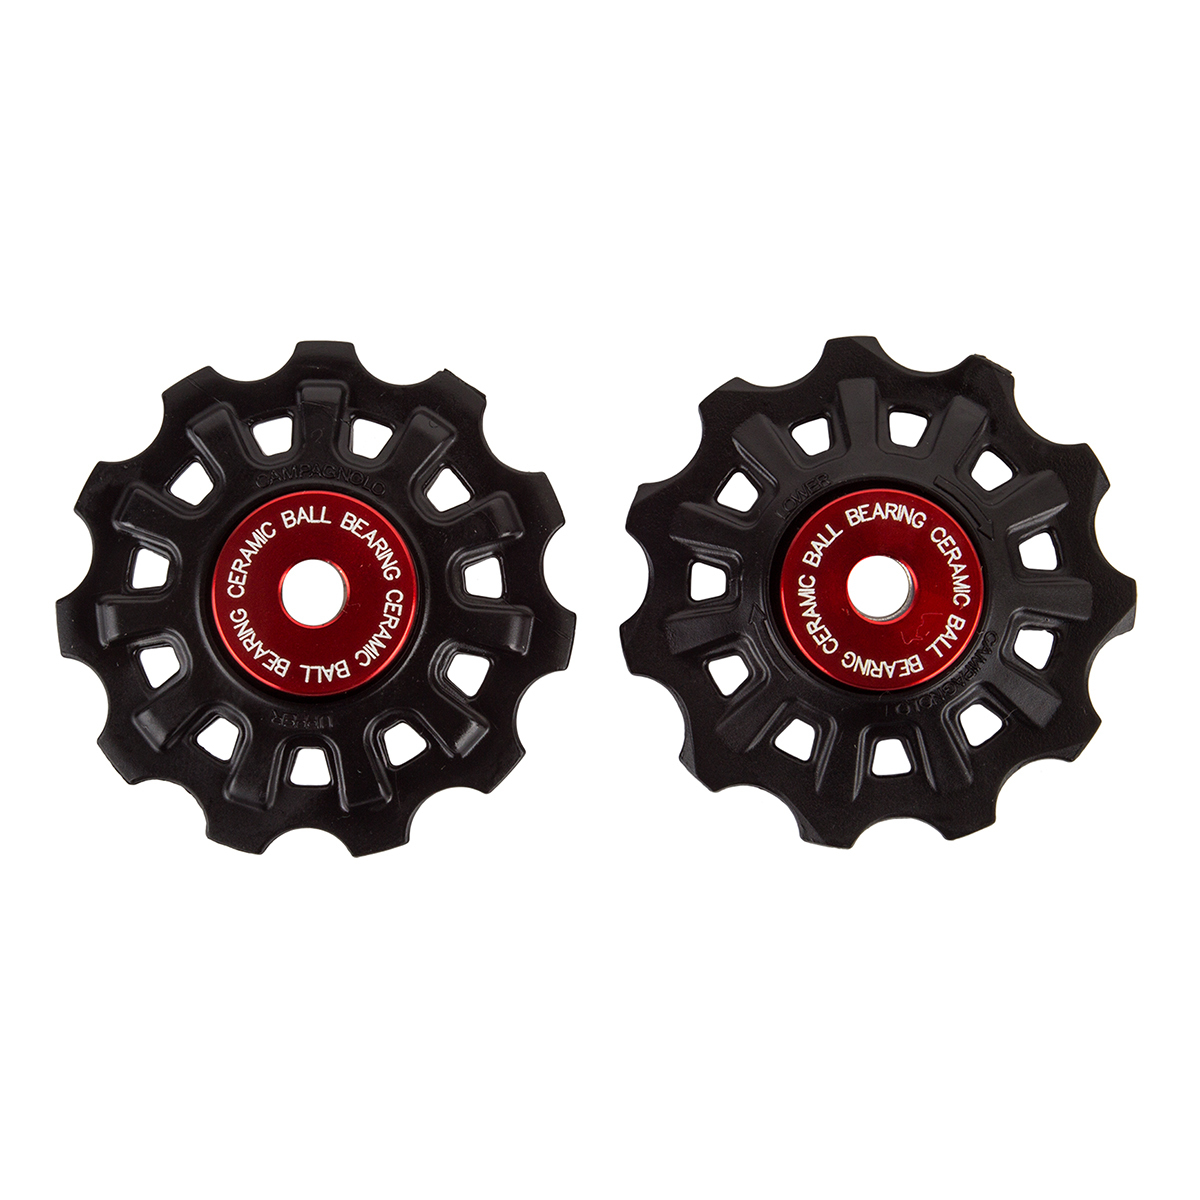 Campagnolo-Super-Record-11-Speed-Rear-Derailleur-Pulley-Set